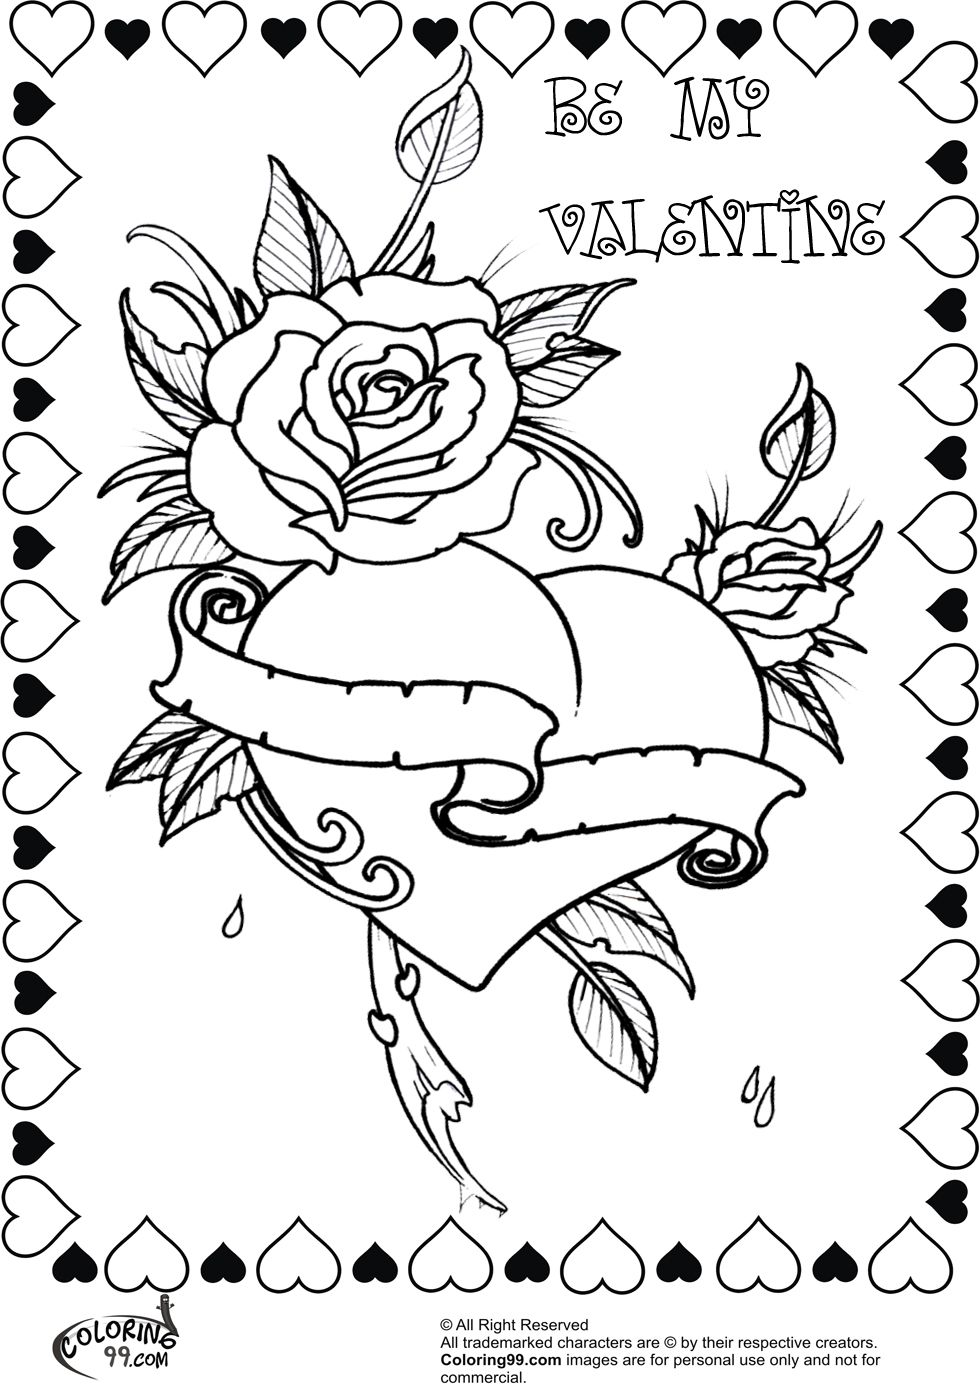 Valentine bookmark to color - Bbeautiful Rose Heart Valentine Coloring Pages For Adults Free Download